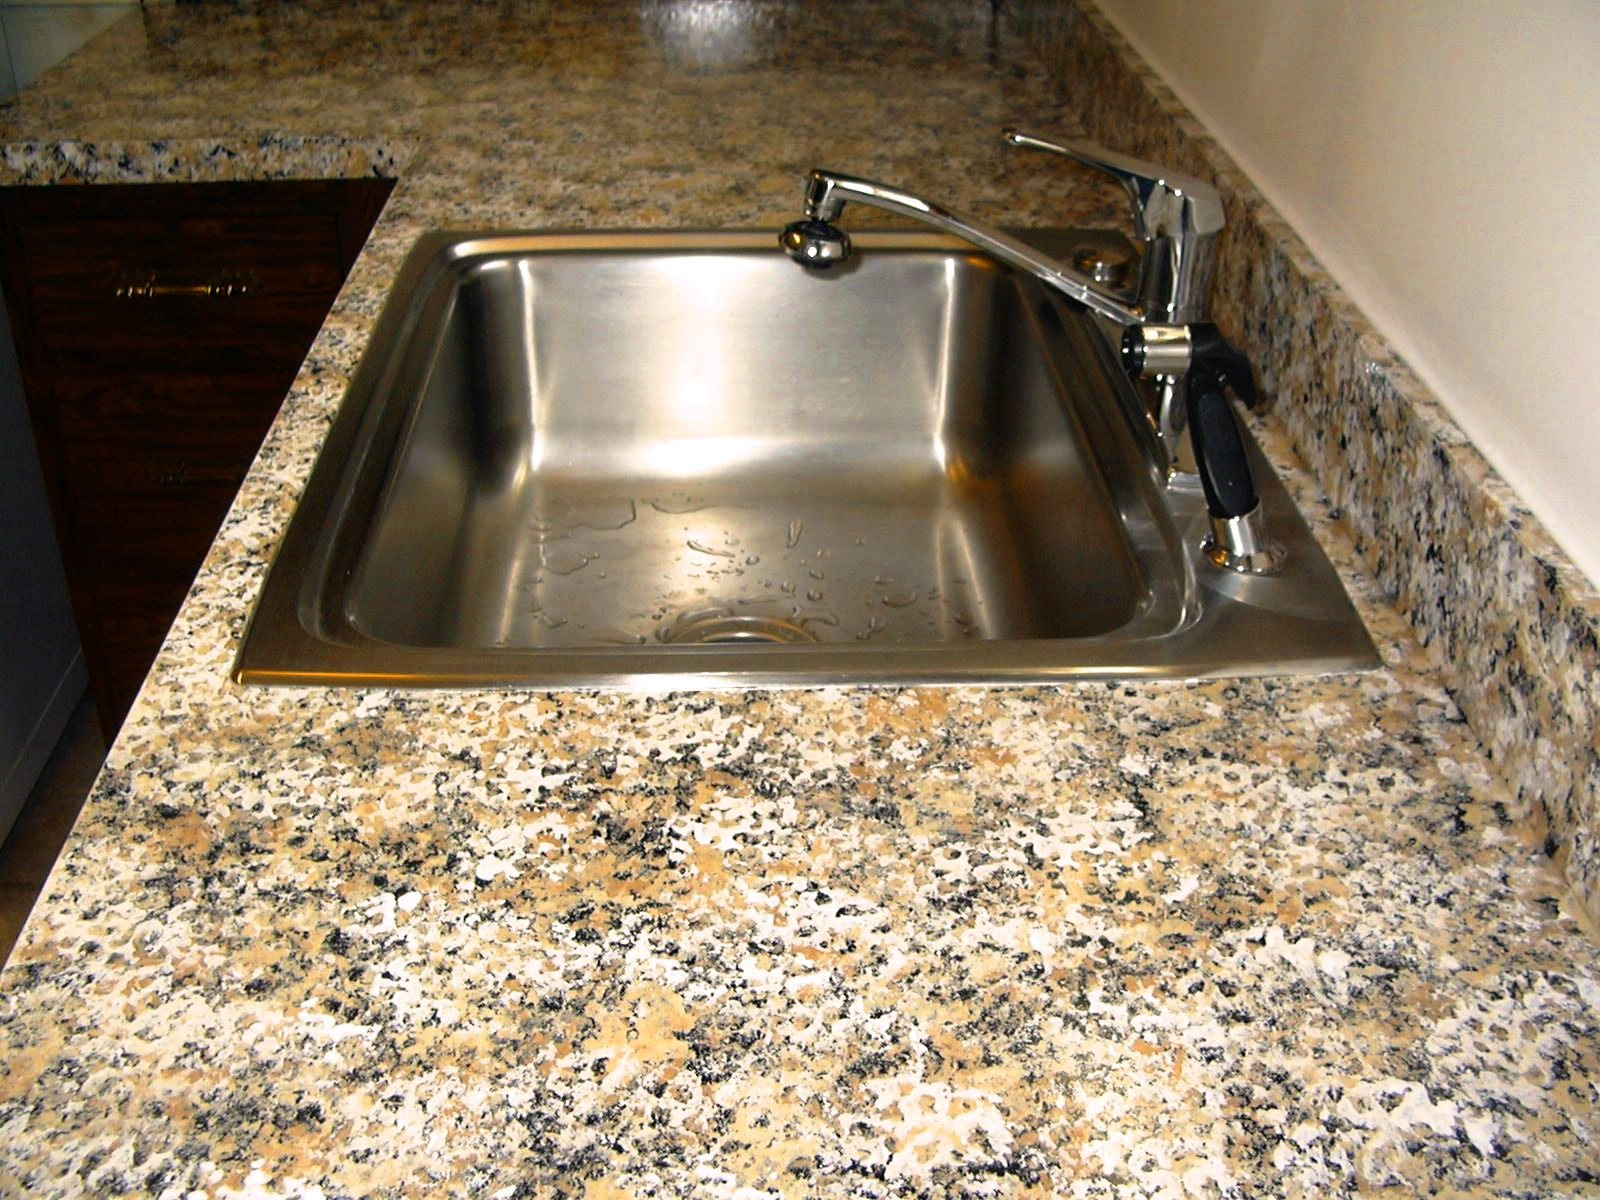 Countertop Painting Kits Ken Nect Our Experience With The Giani Granite Countertop